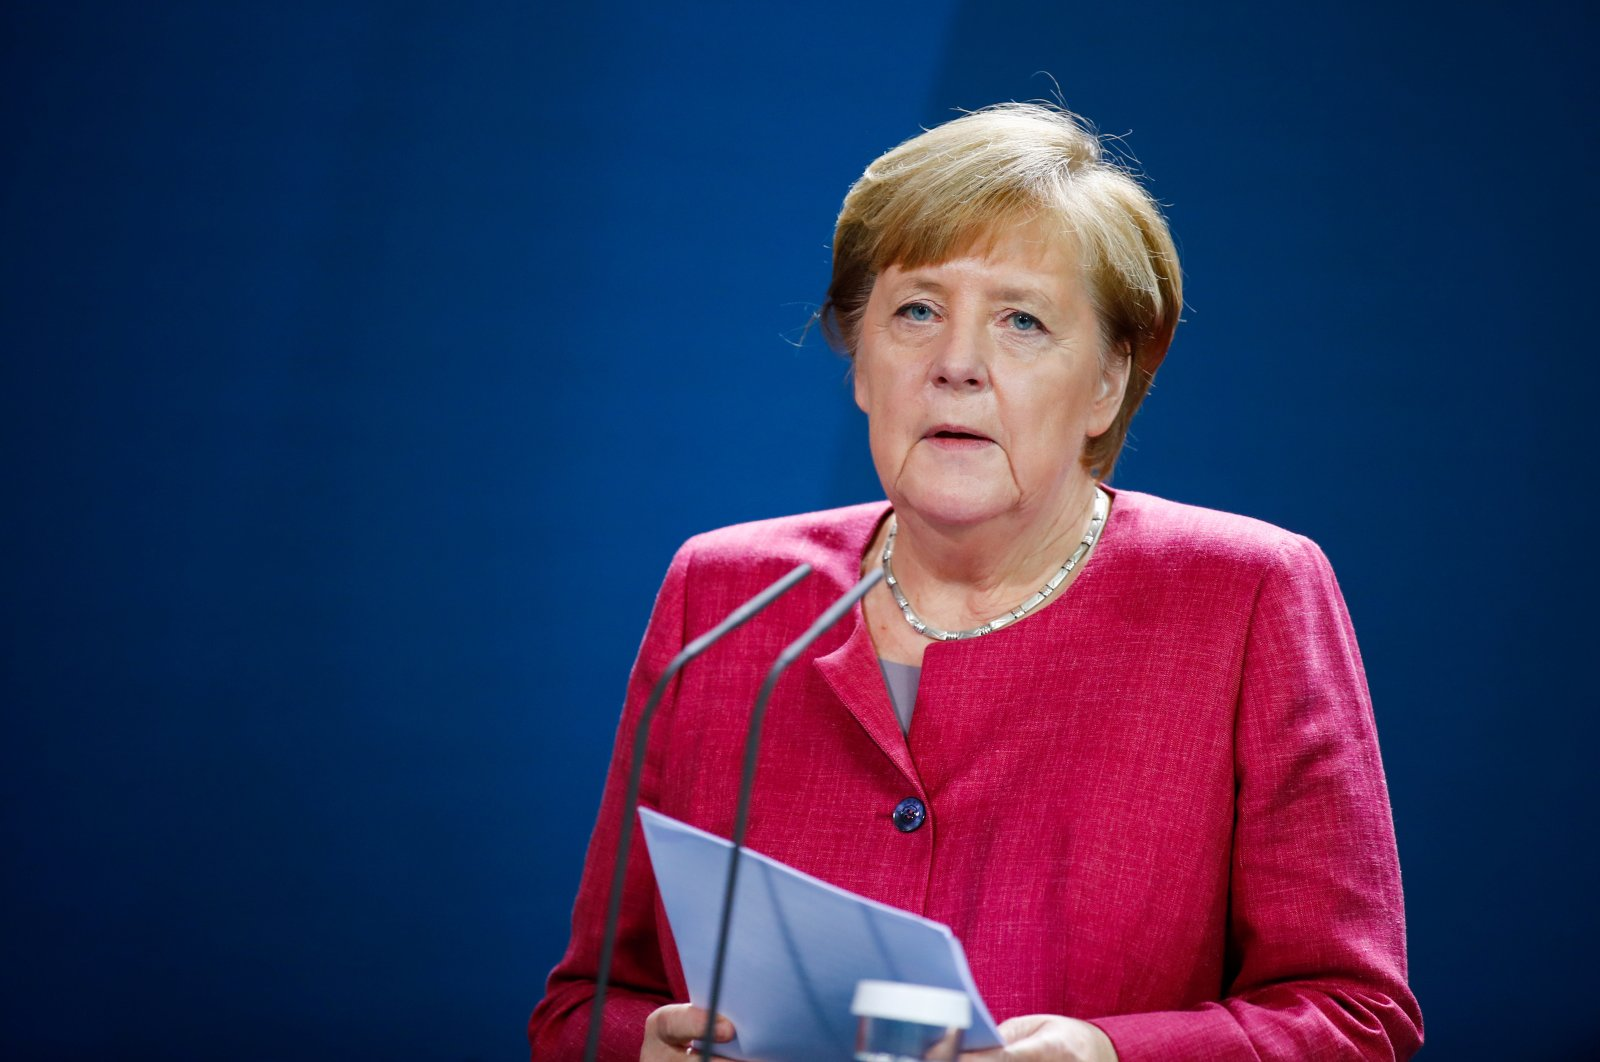 German Chancellor Angela Merkel gives a media statement after a videoconference with mayors of German cities, Berlin, Germany, Oct. 9, 2020. (Reuters Photo)